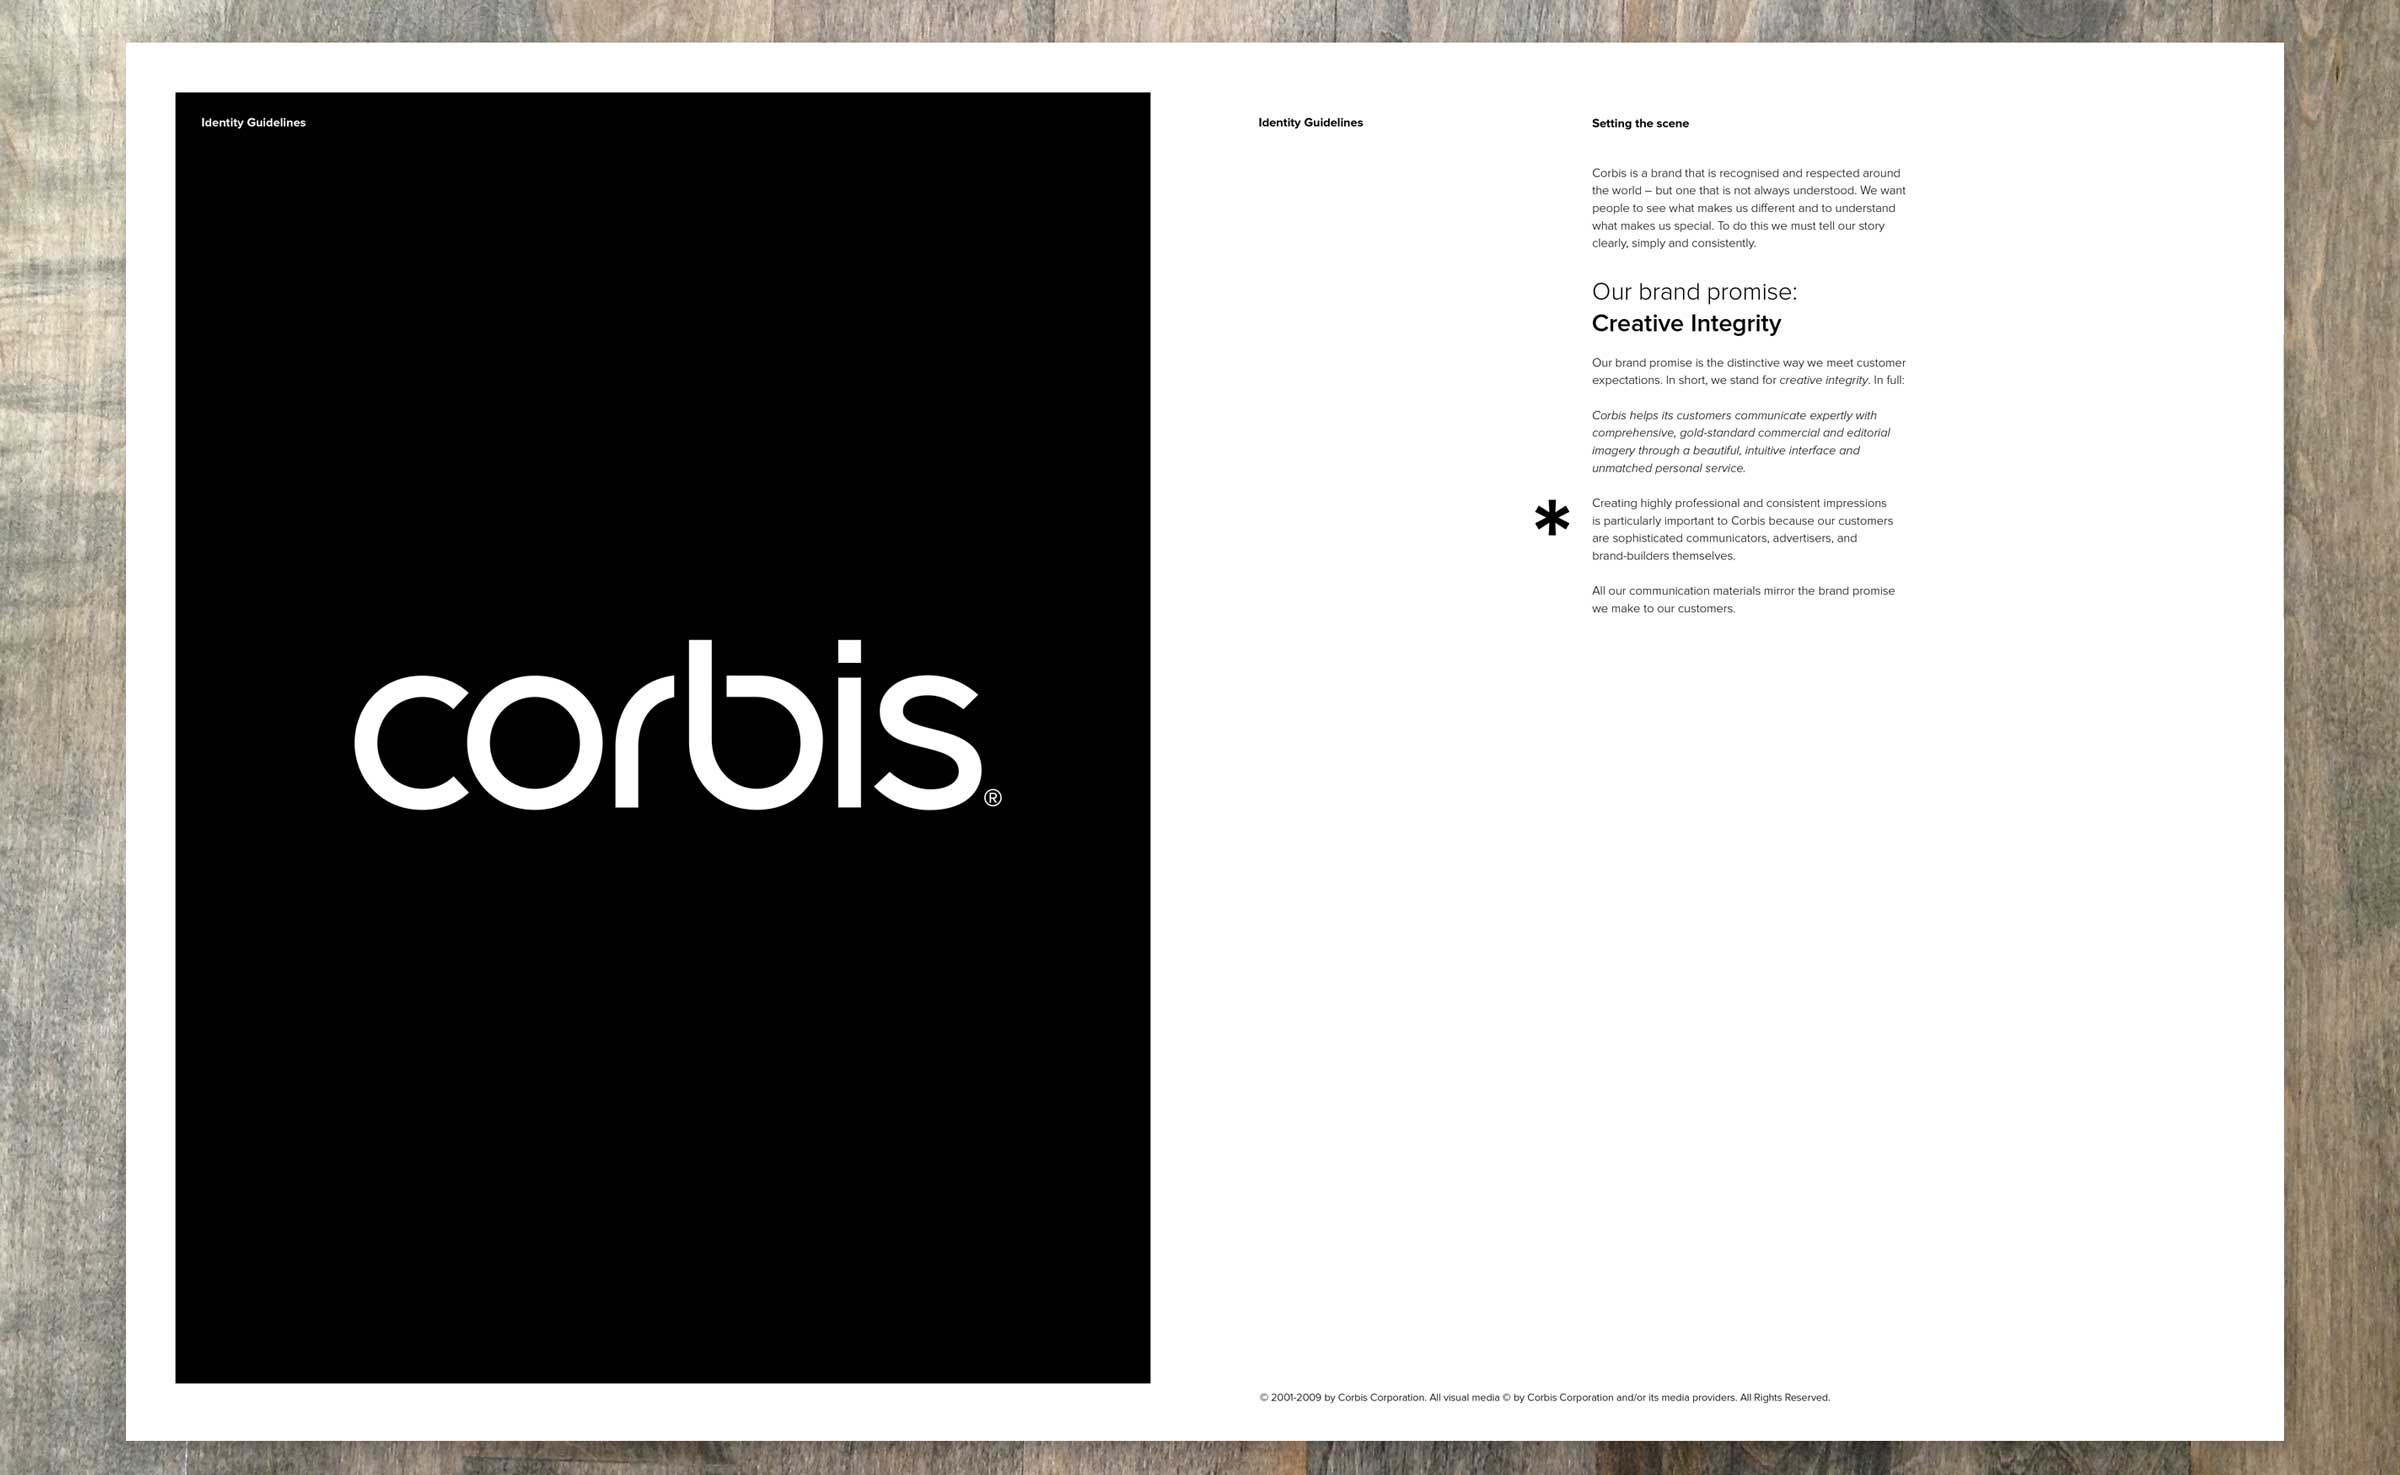 The Corbis Brand — Sheldon Popiel